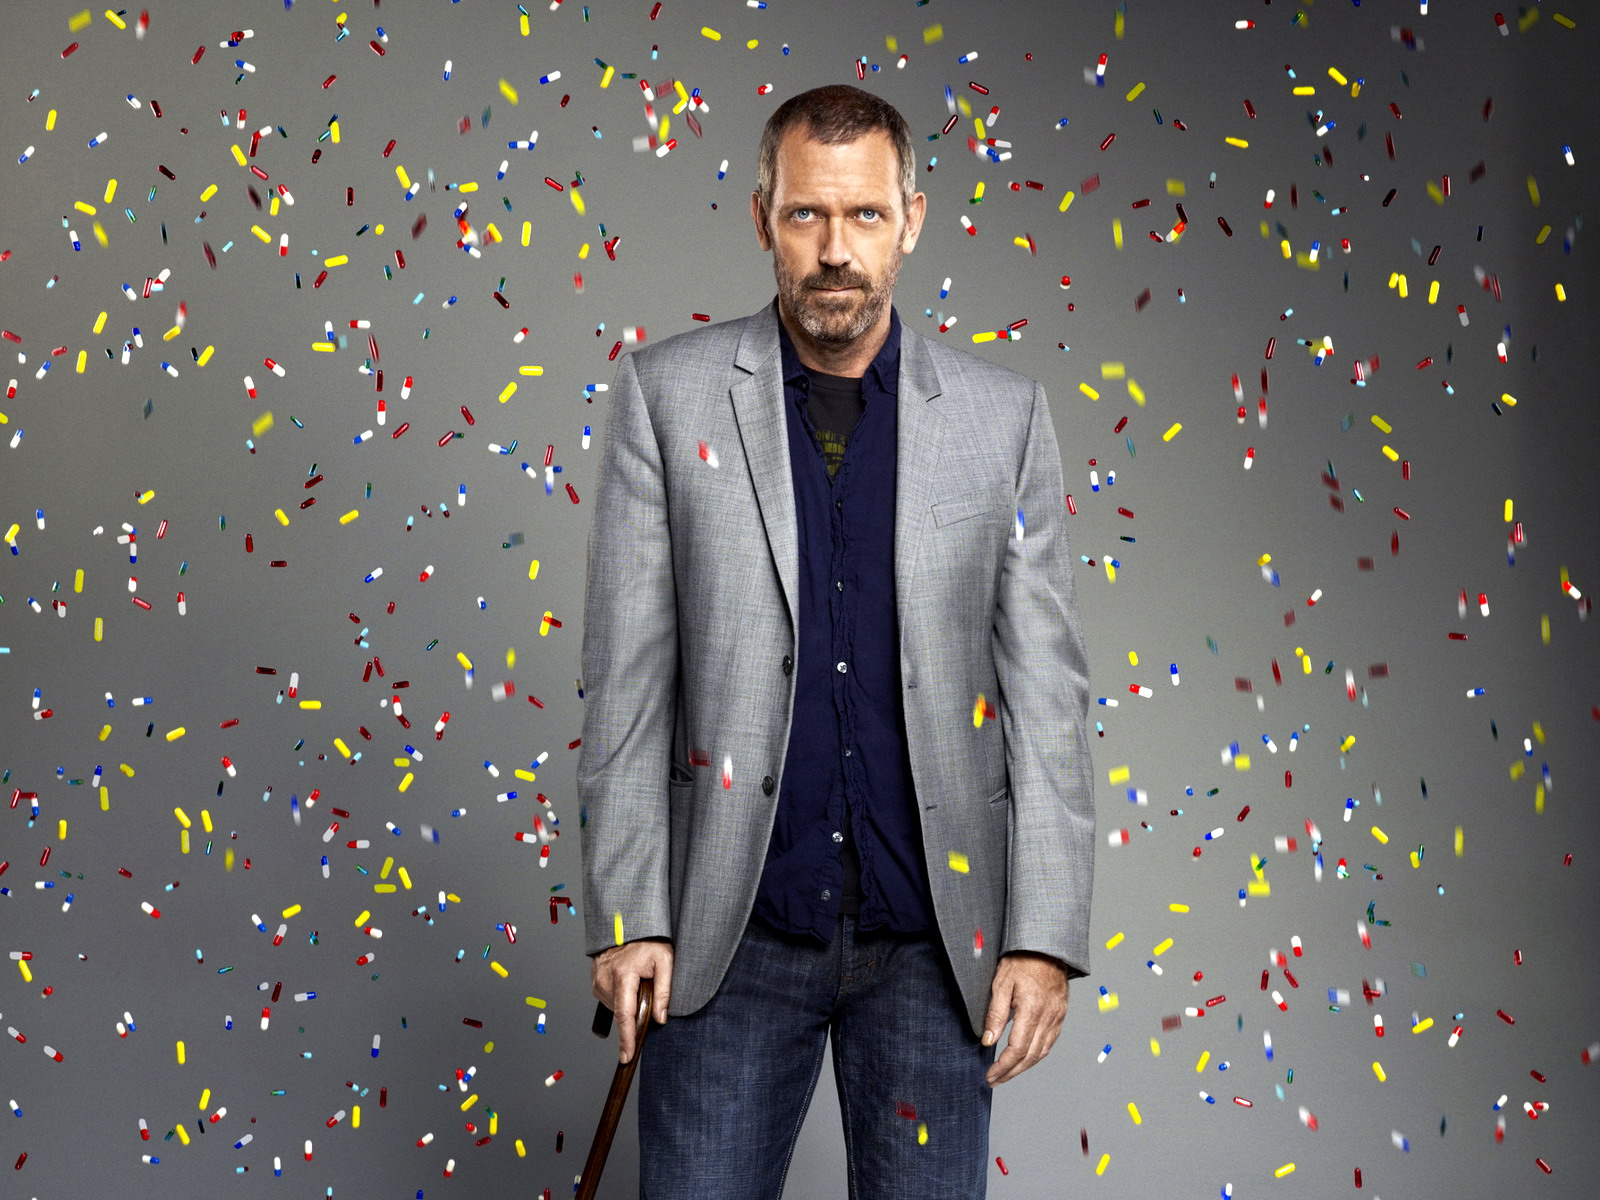 Download Wallpaper hugh laurie dr house md gregory tablet 1600x1200